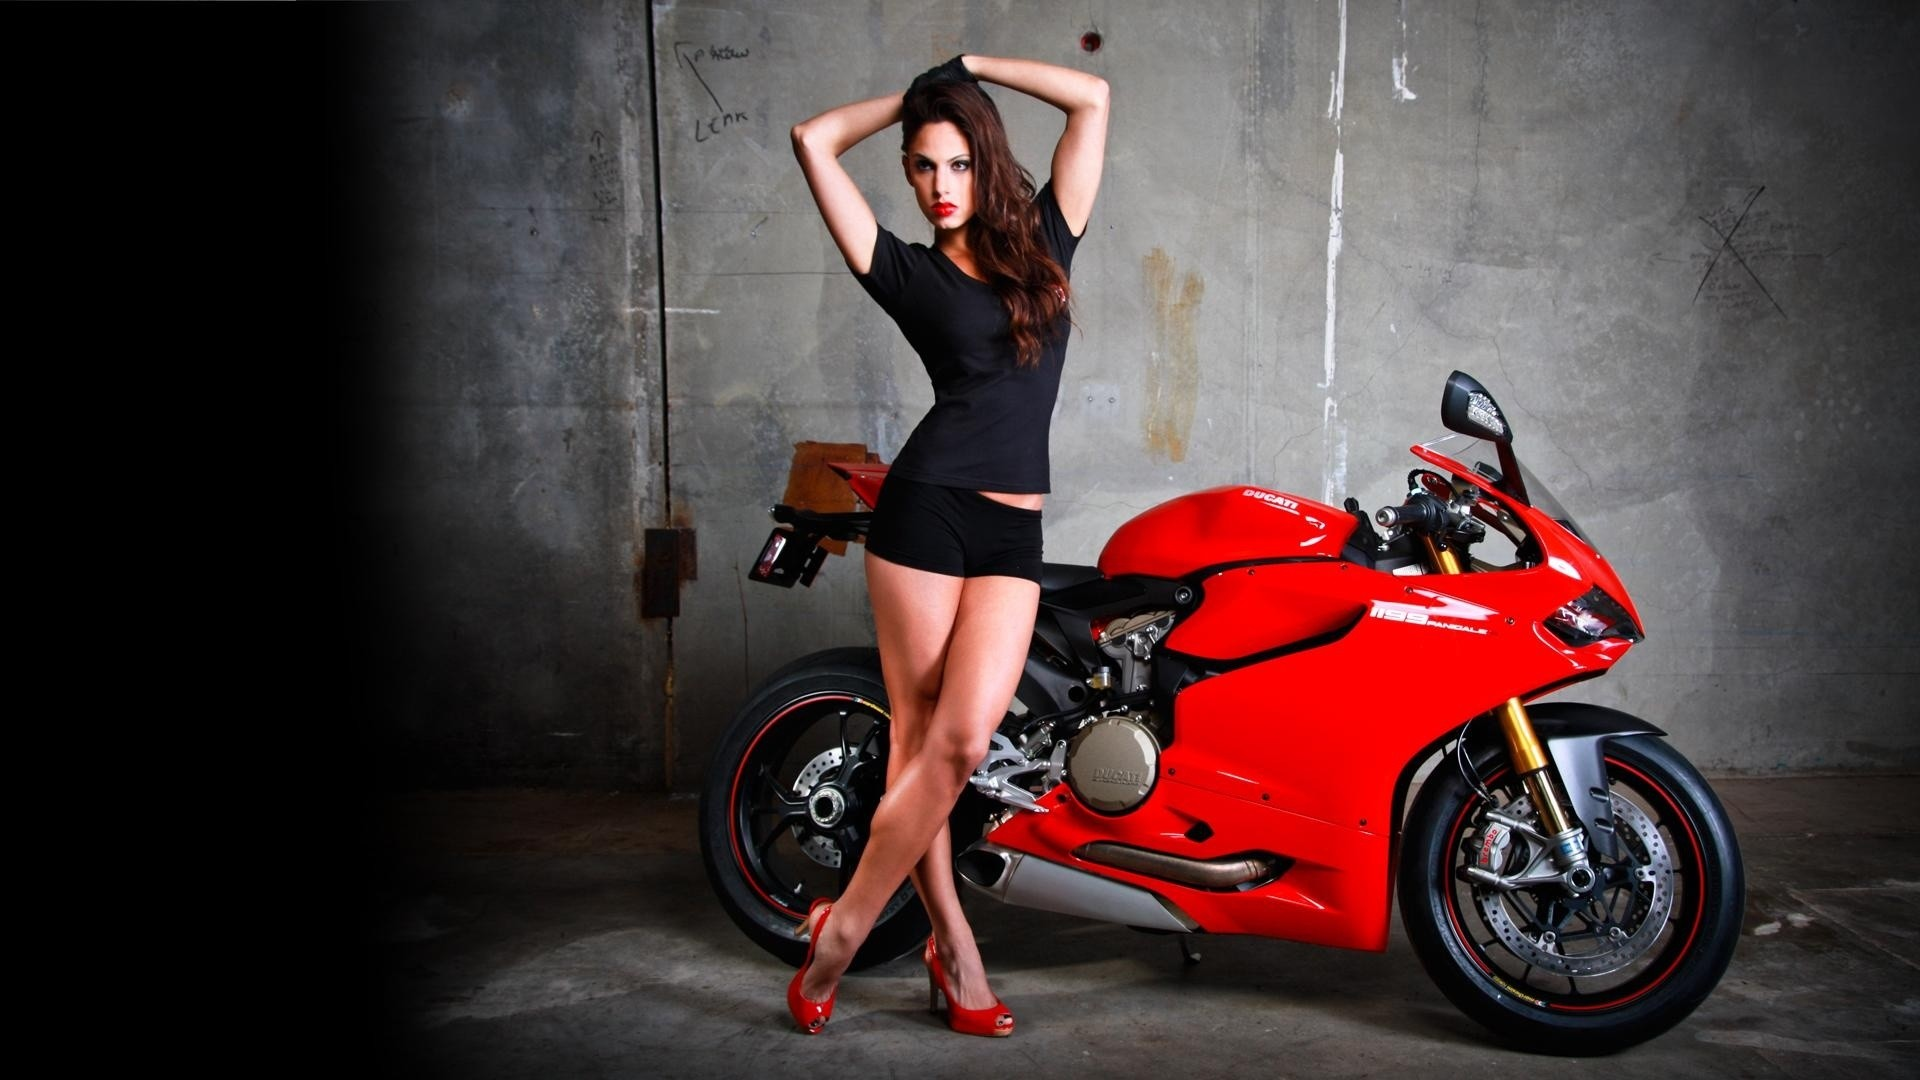 girl on motorcycles